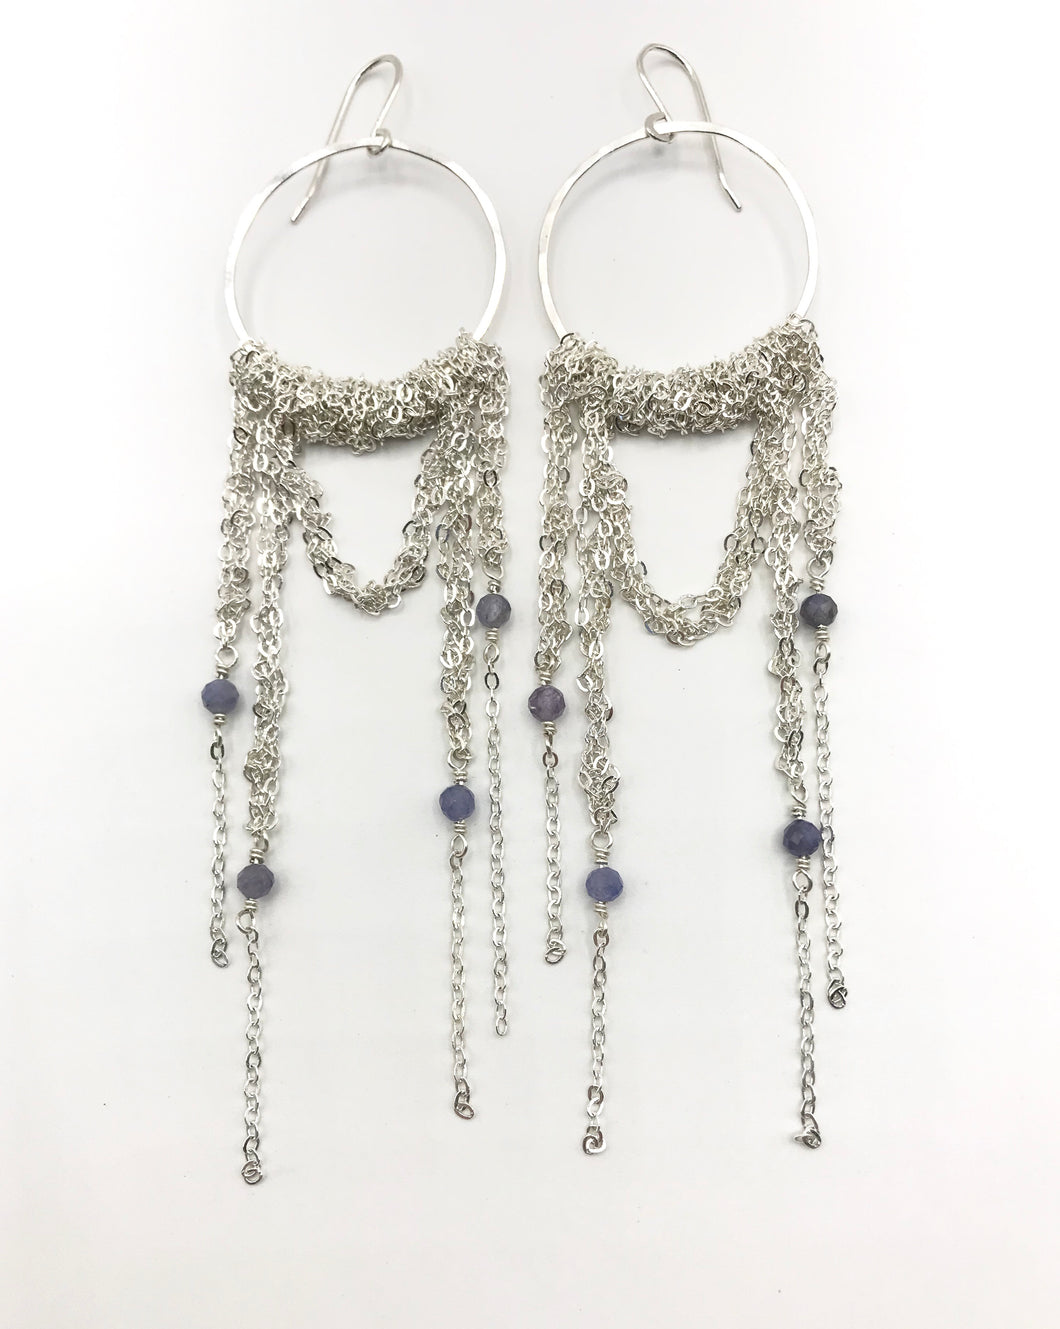 XL silver draped hoops with tanzanite